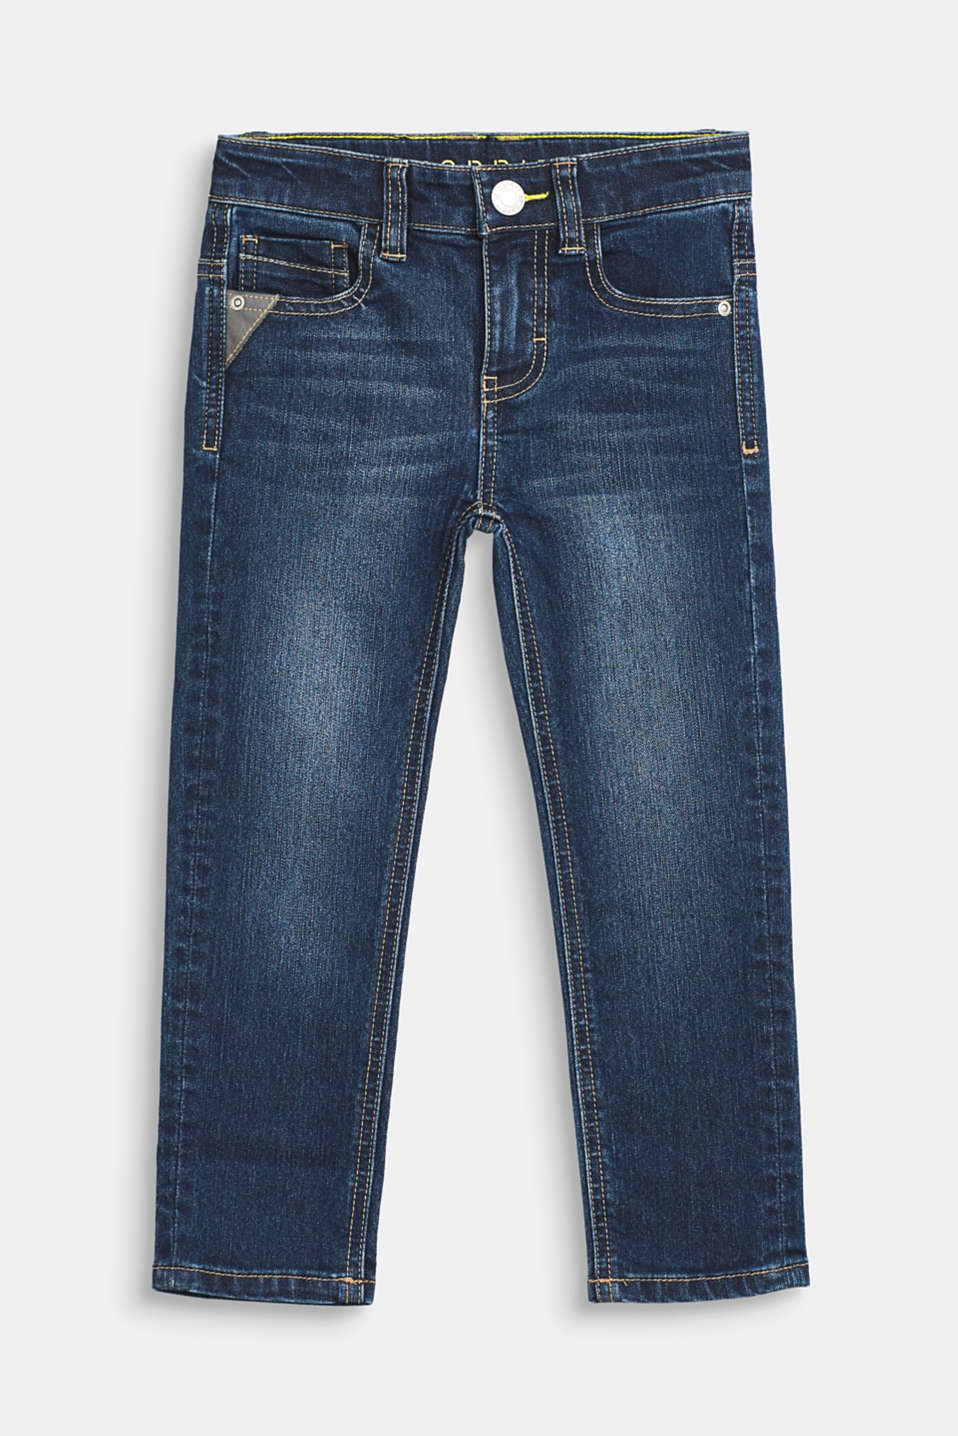 Esprit - Stretch jeans with a tape detail and adjustable waistband